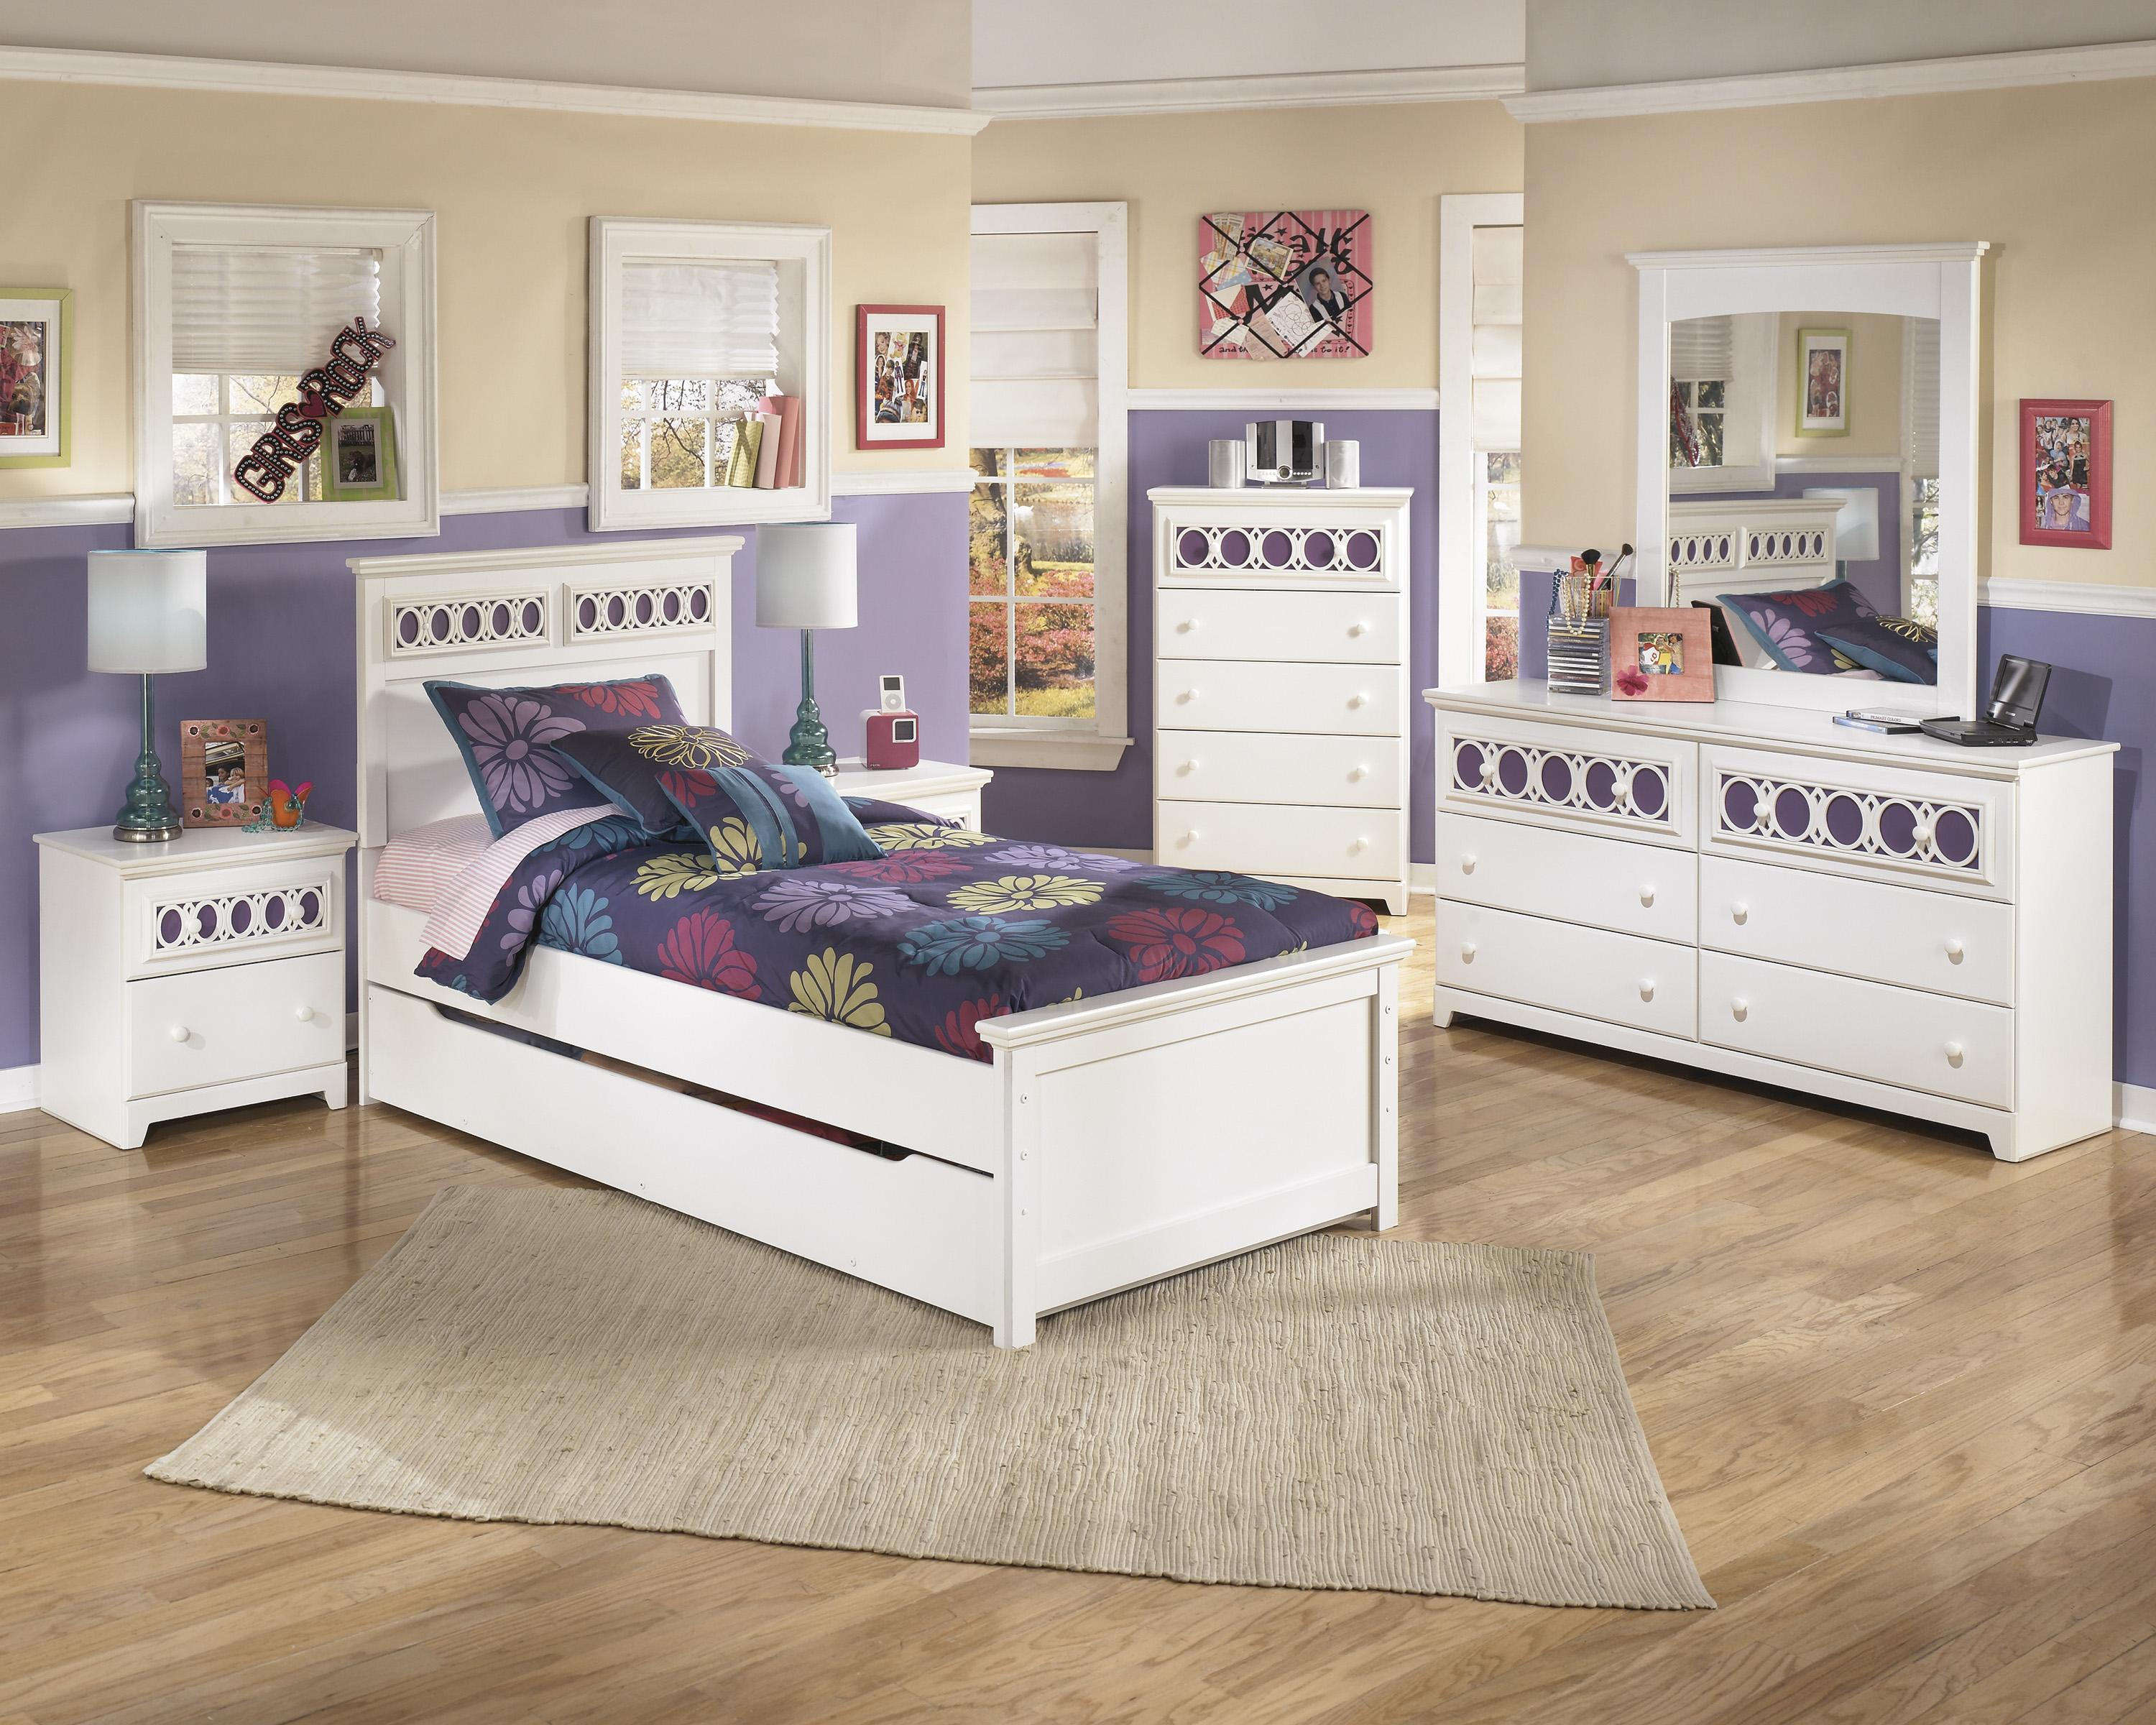 Signature Design by Ashley Zayley Twin Bedroom Group - Item Number: B131 T Bedroom Group 3